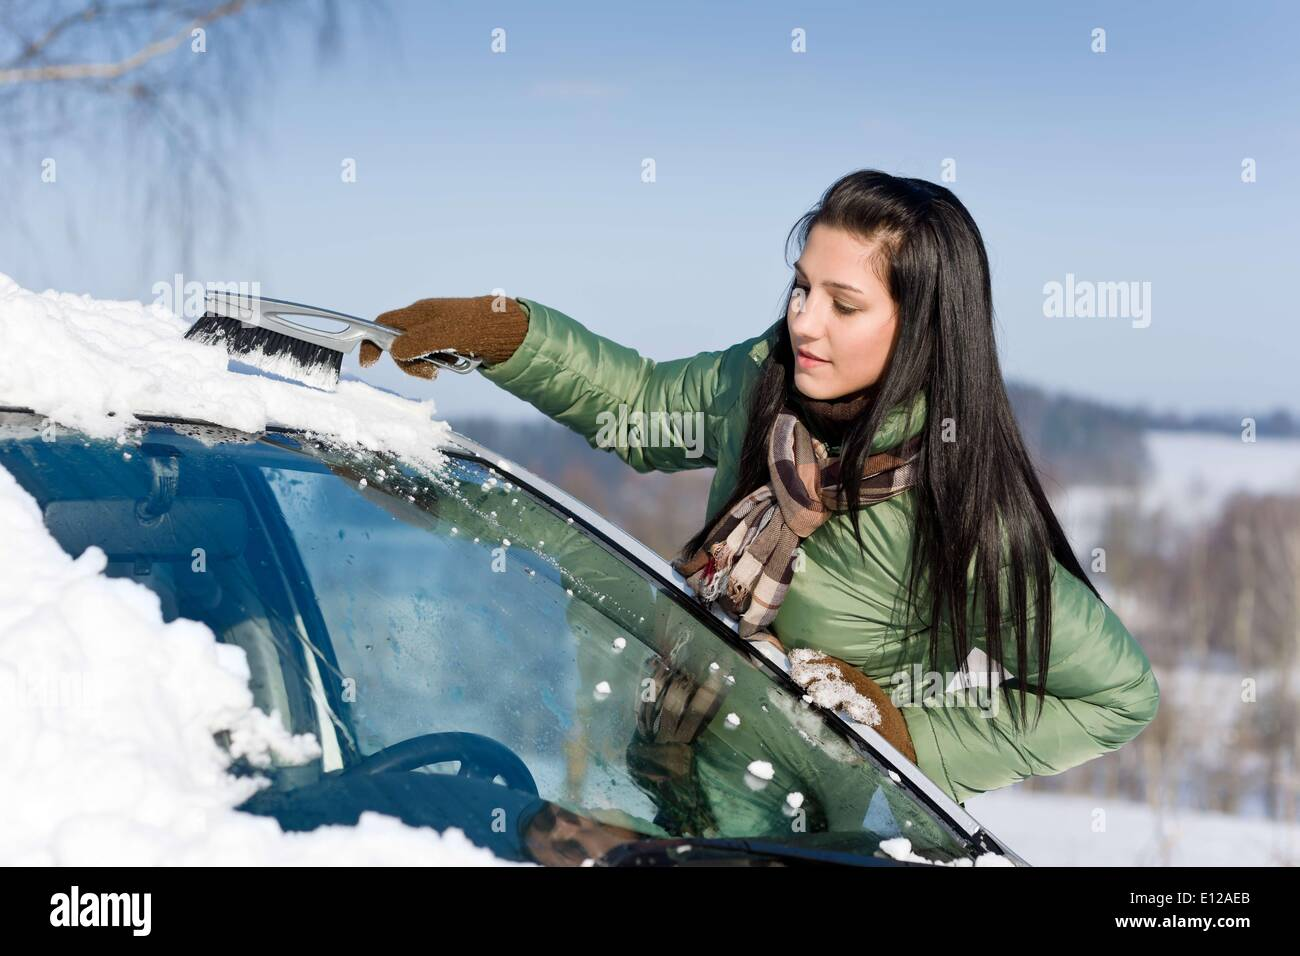 Dec. 02, 2010 - Dec. 2, 2010 - Winter car - woman remove snow from windshield with snow brush - Stock Image